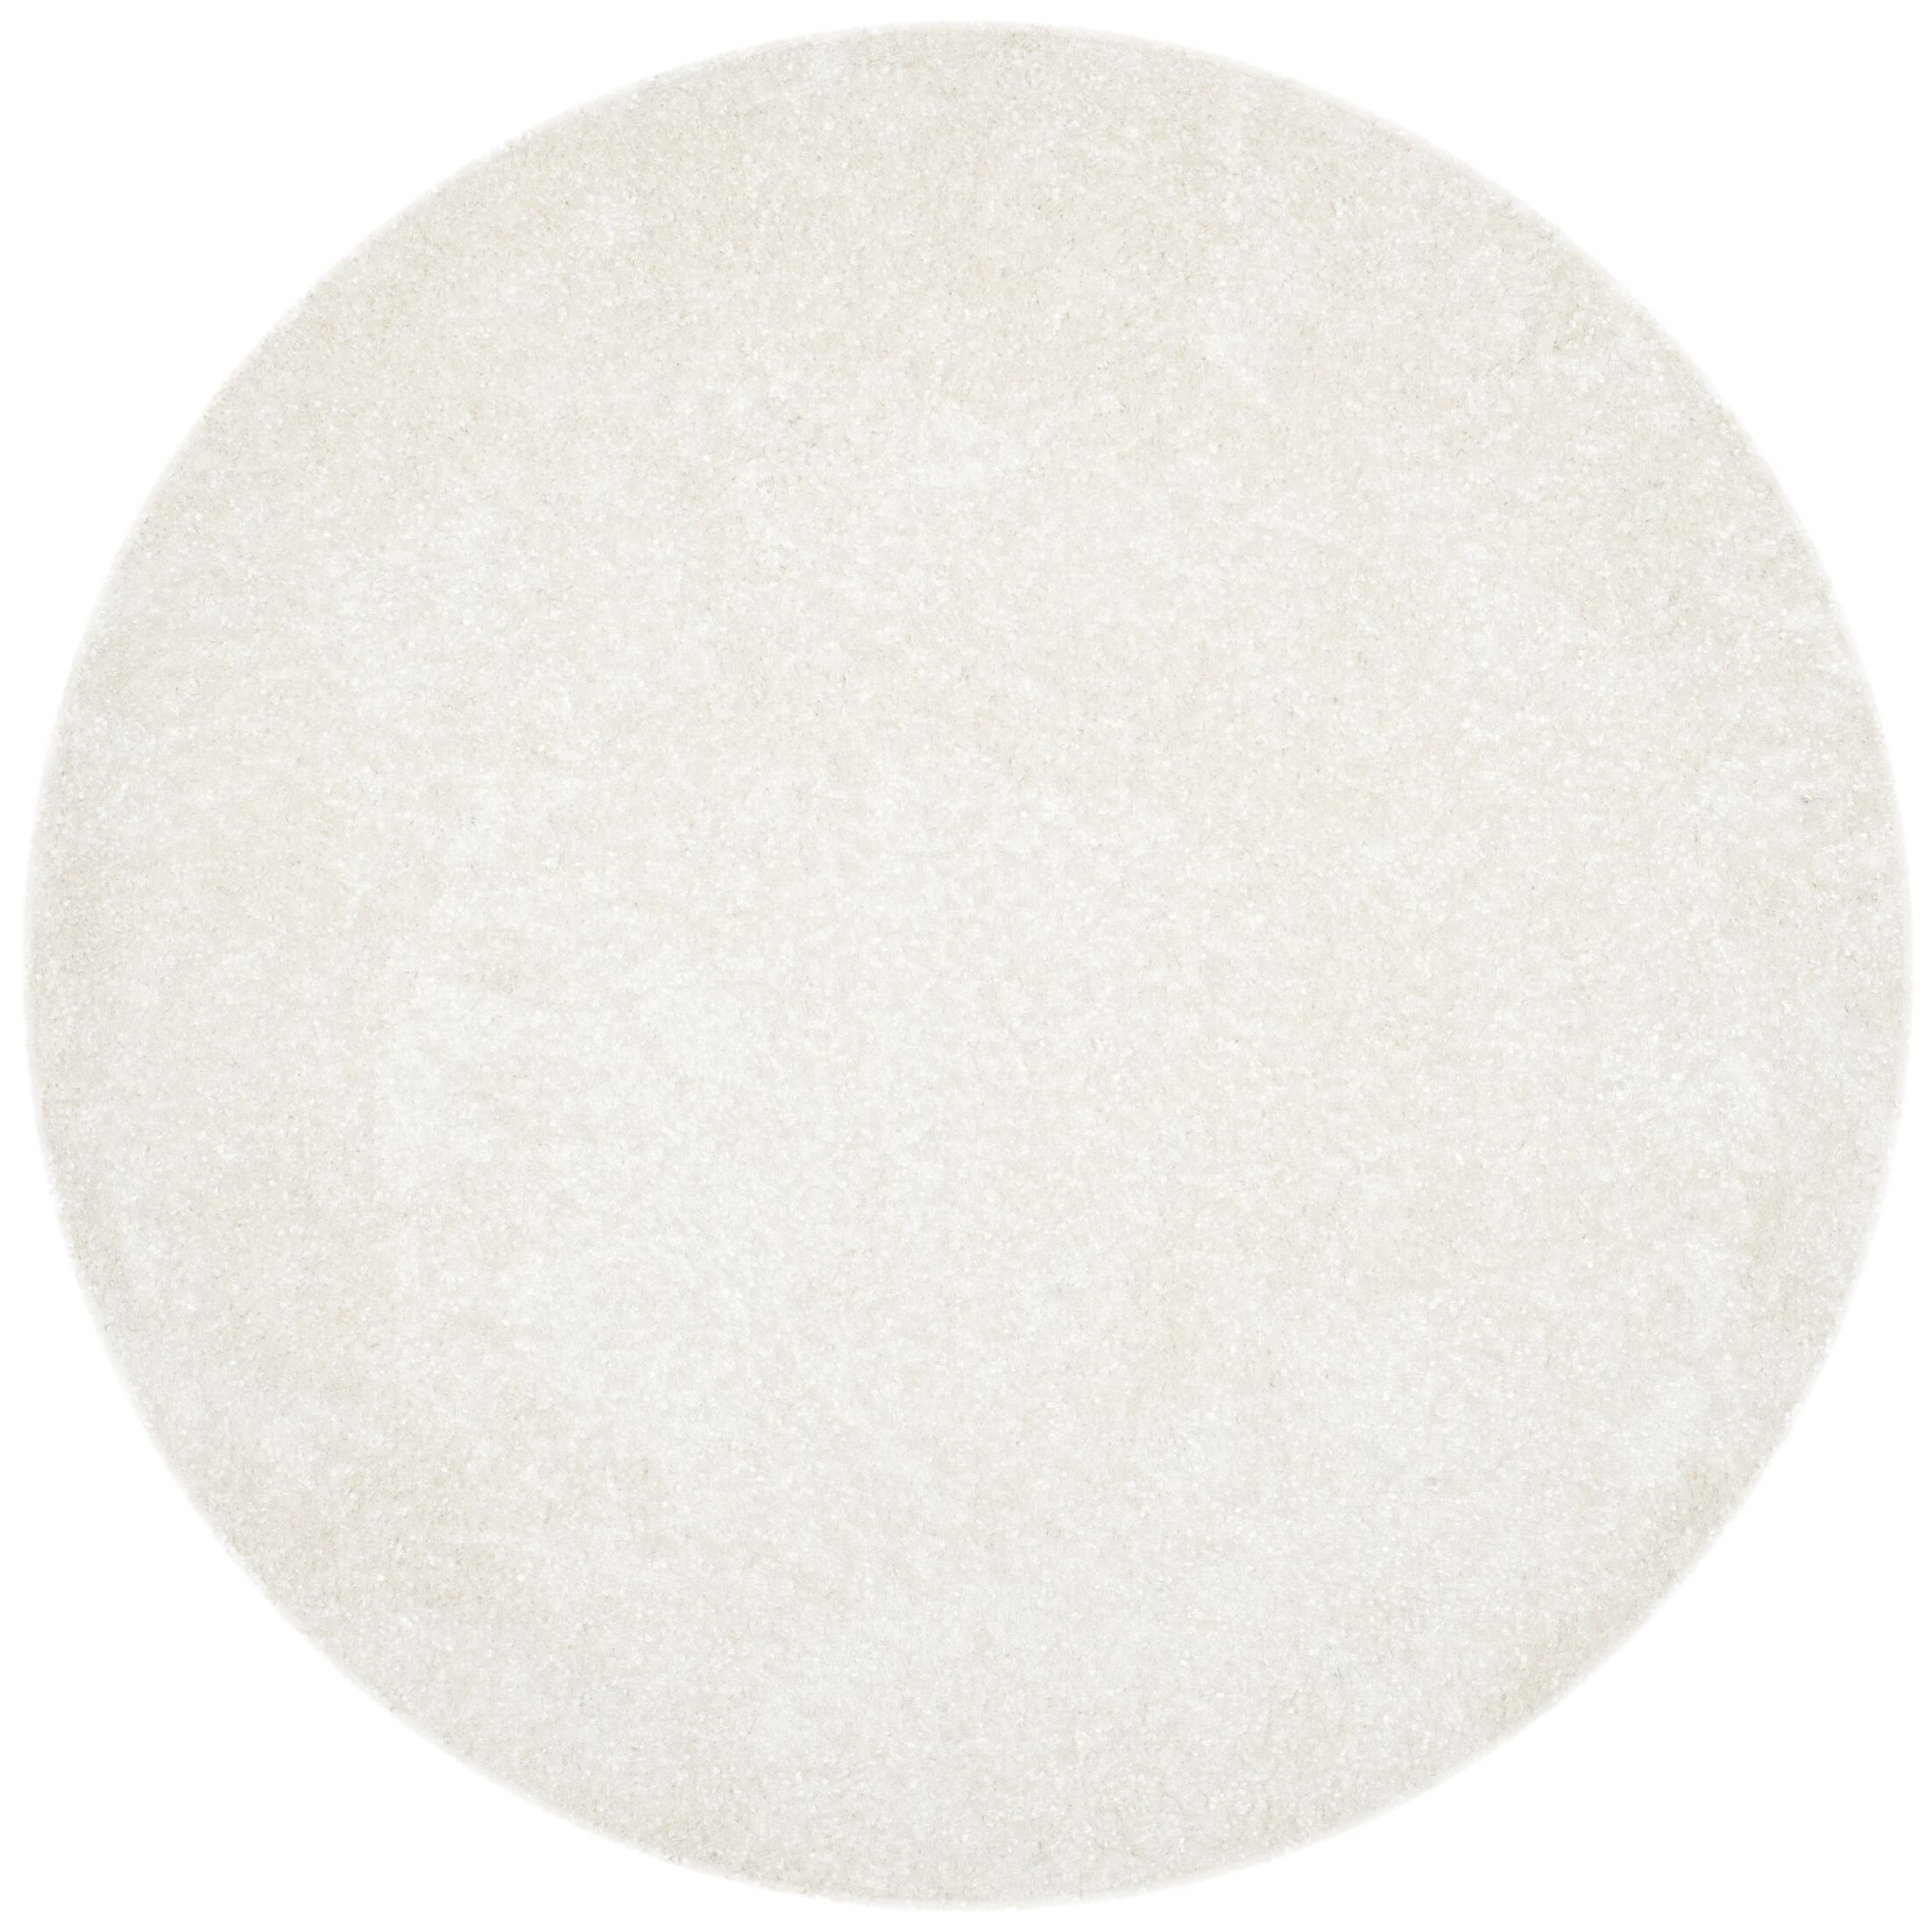 Chesa Hand-Tufted/Hand-Hooked White Area Rug Rug Size: Round 7'